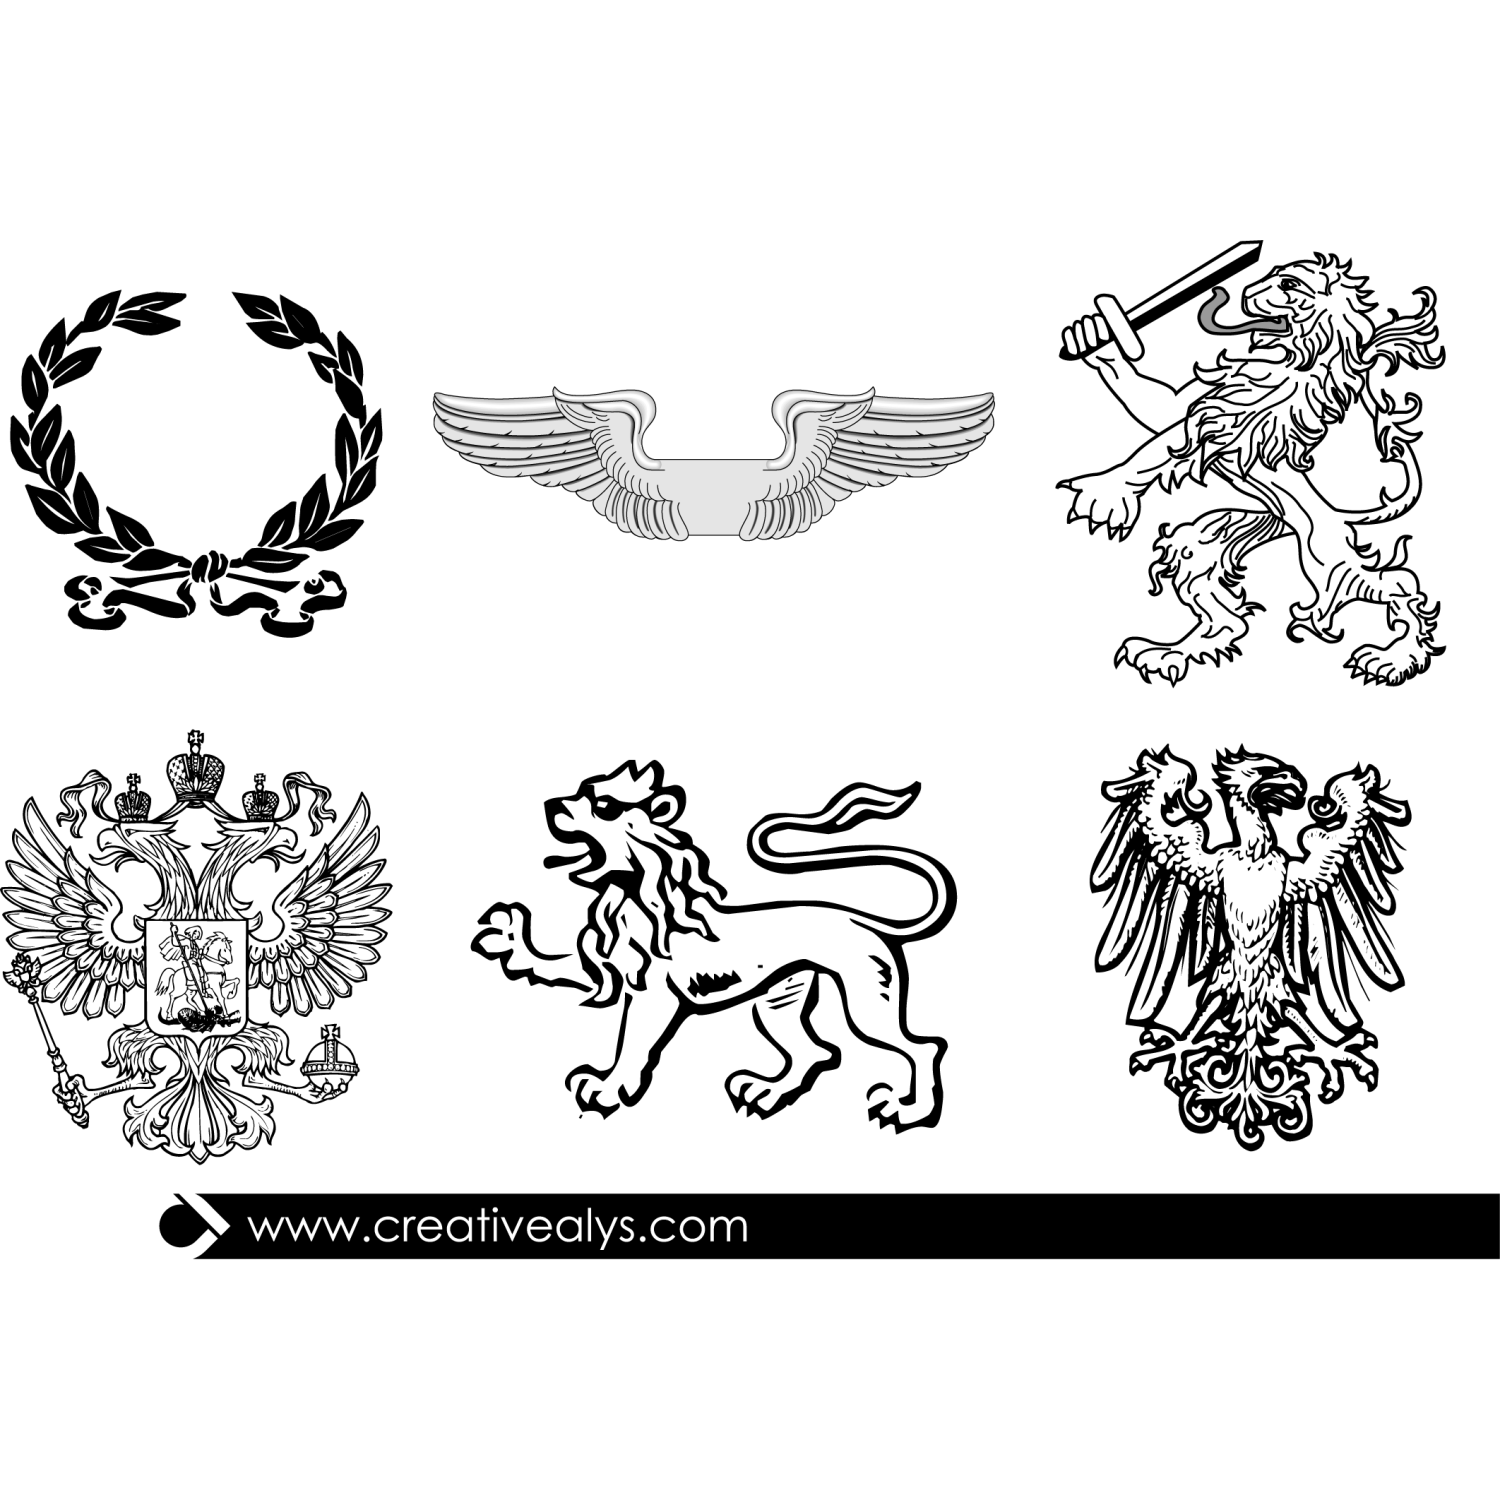 Heraldic Elements For Logo Design